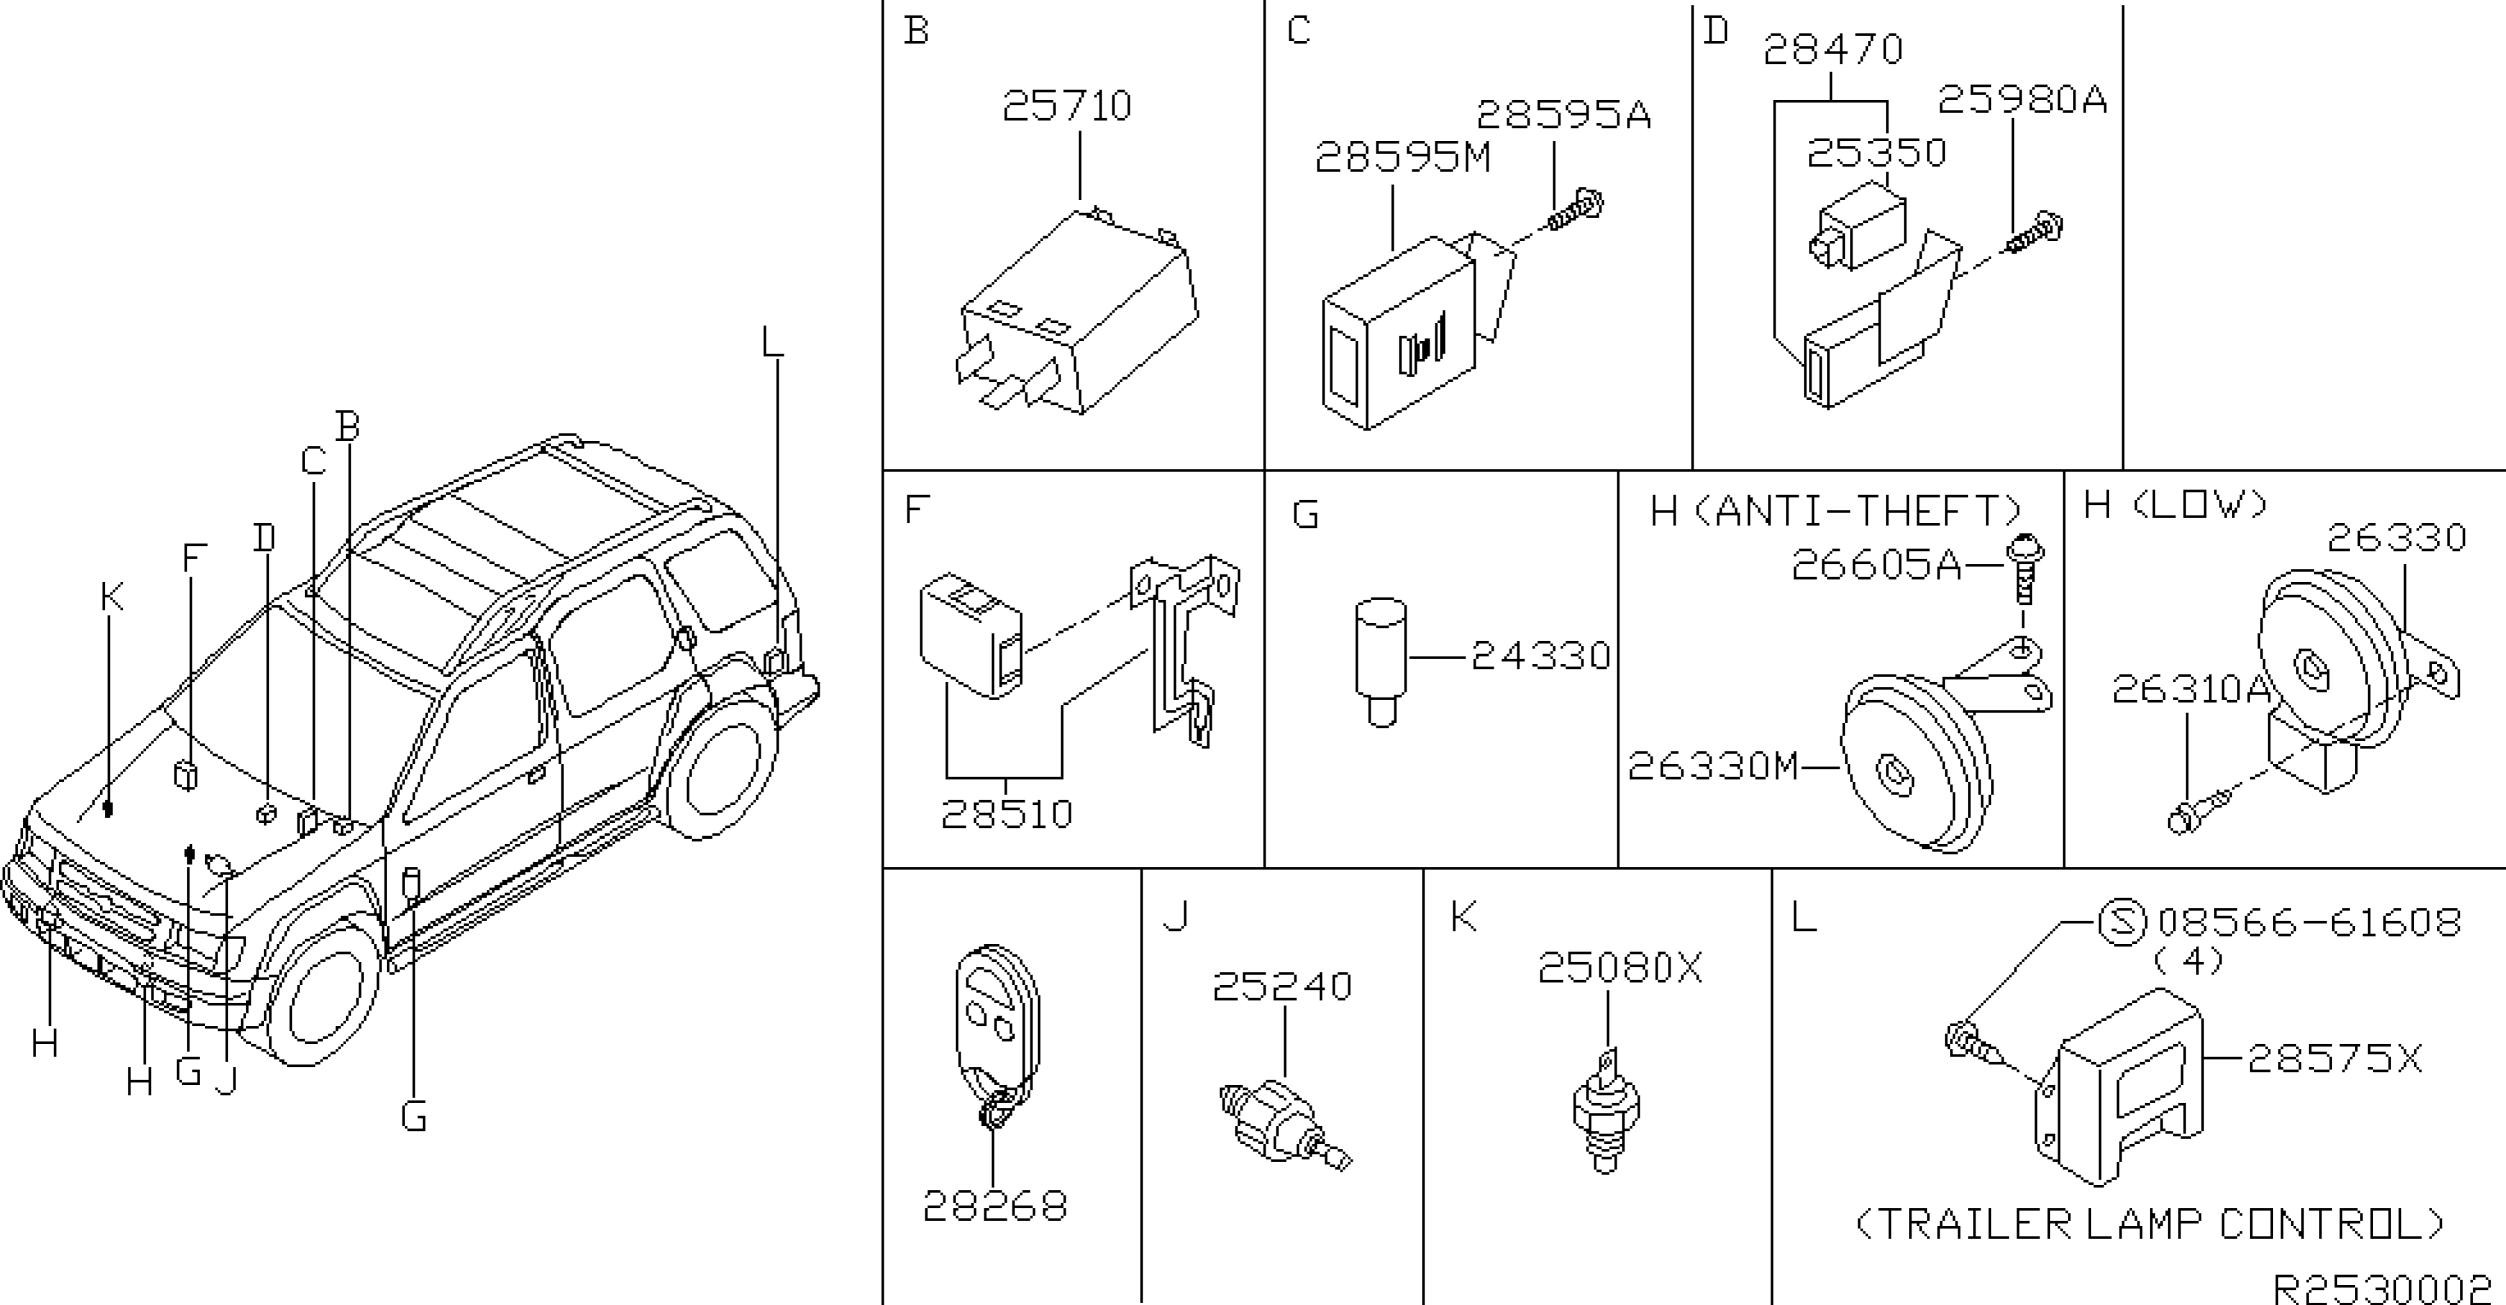 2000 Nissan Xterra Engine Diagram 2002 Nissan Xterra Oem Parts Nissan Usa Estore Of 2000 Nissan Xterra Engine Diagram